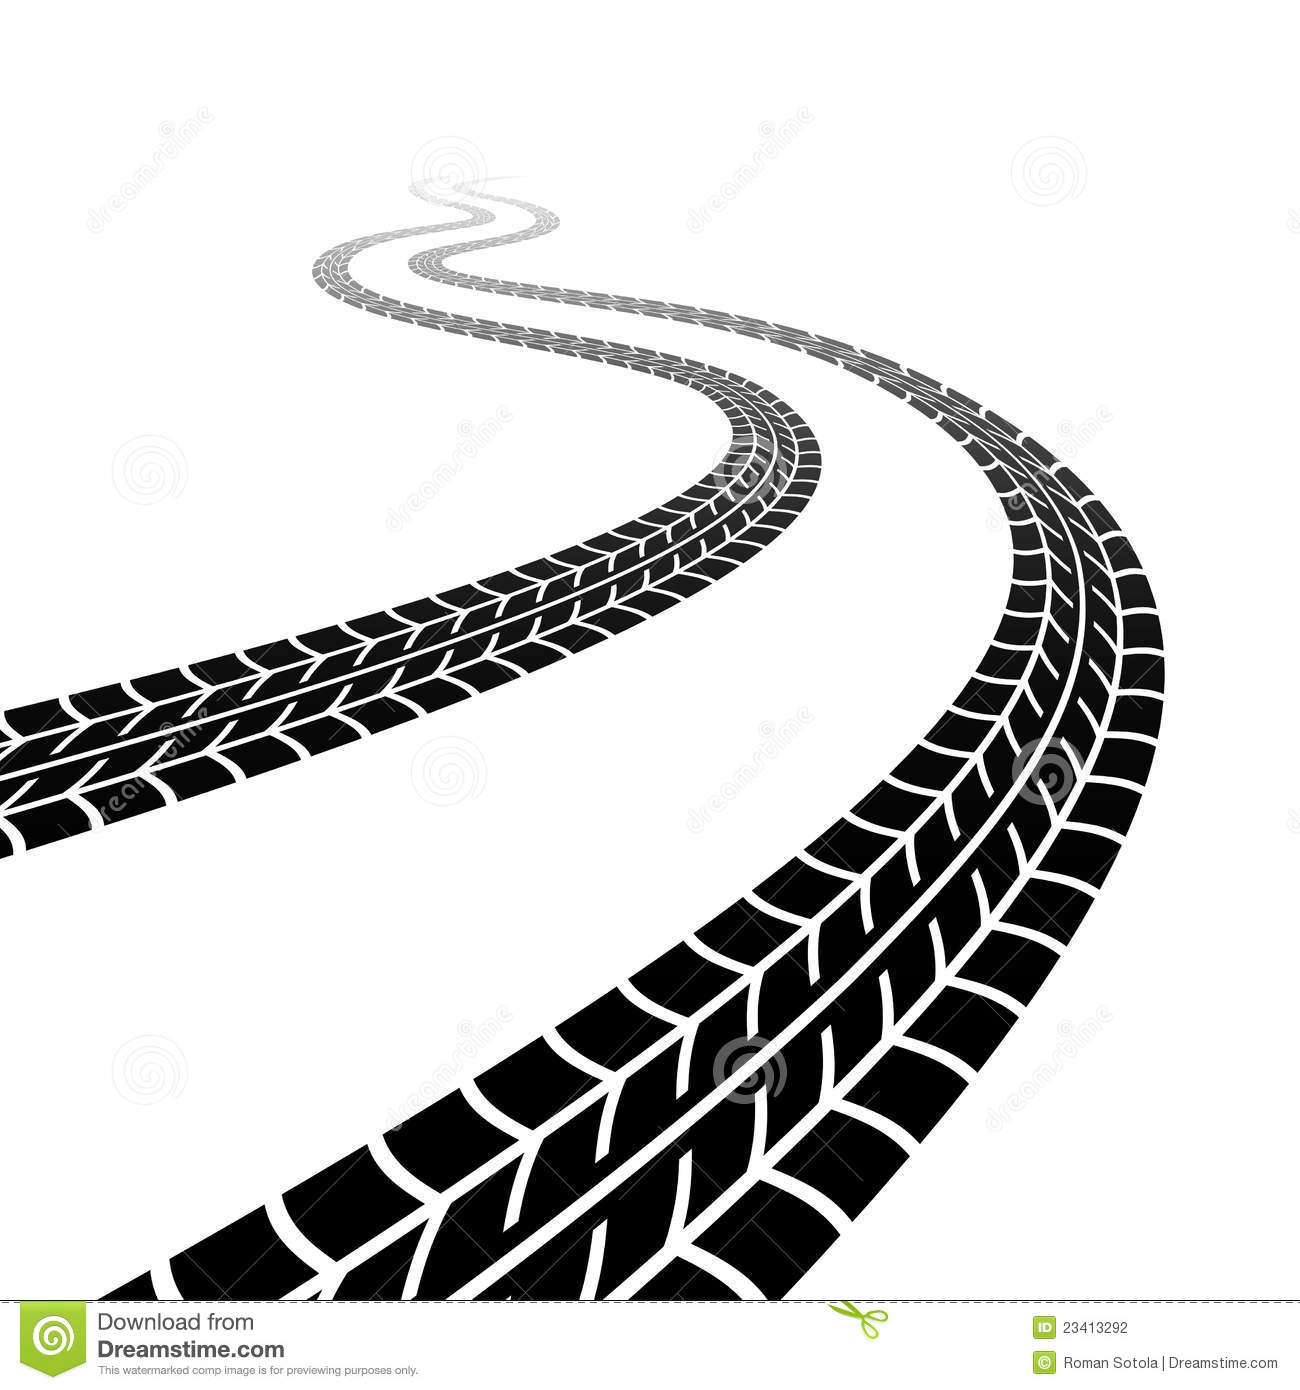 Winding trace of the tyres stock vector. Illustration of